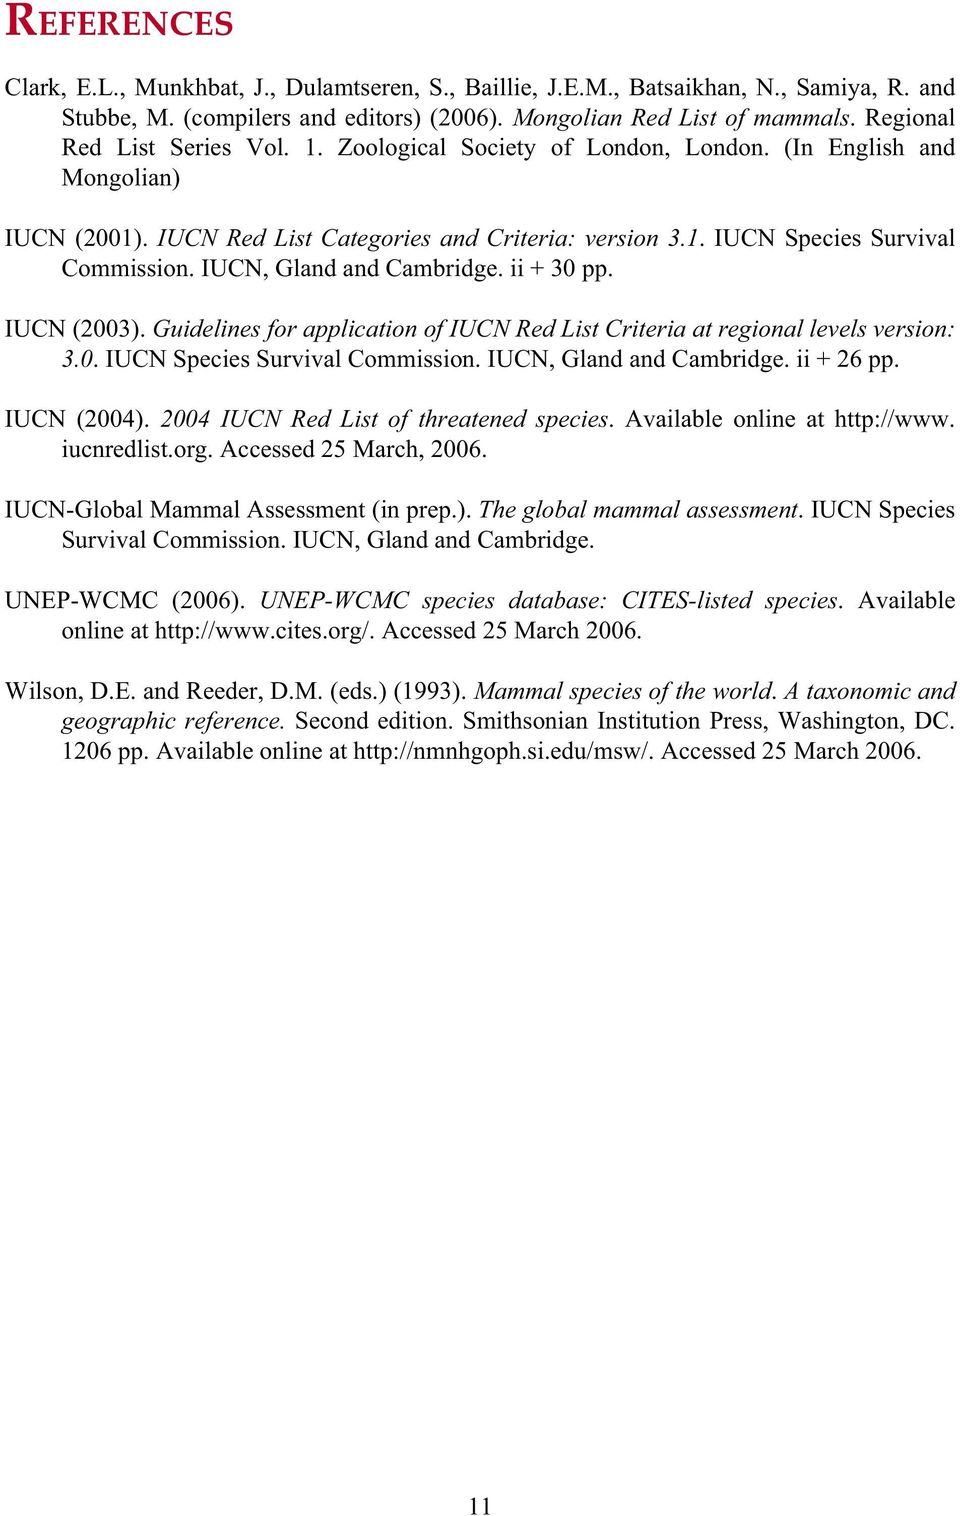 IUCN, Gland and Cambridge. ii + 30 pp. IUCN (2003). Guidelines for application of IUCN Red List Criteria at regional levels version: 3.0. IUCN Species Survival Commission. IUCN, Gland and Cambridge.